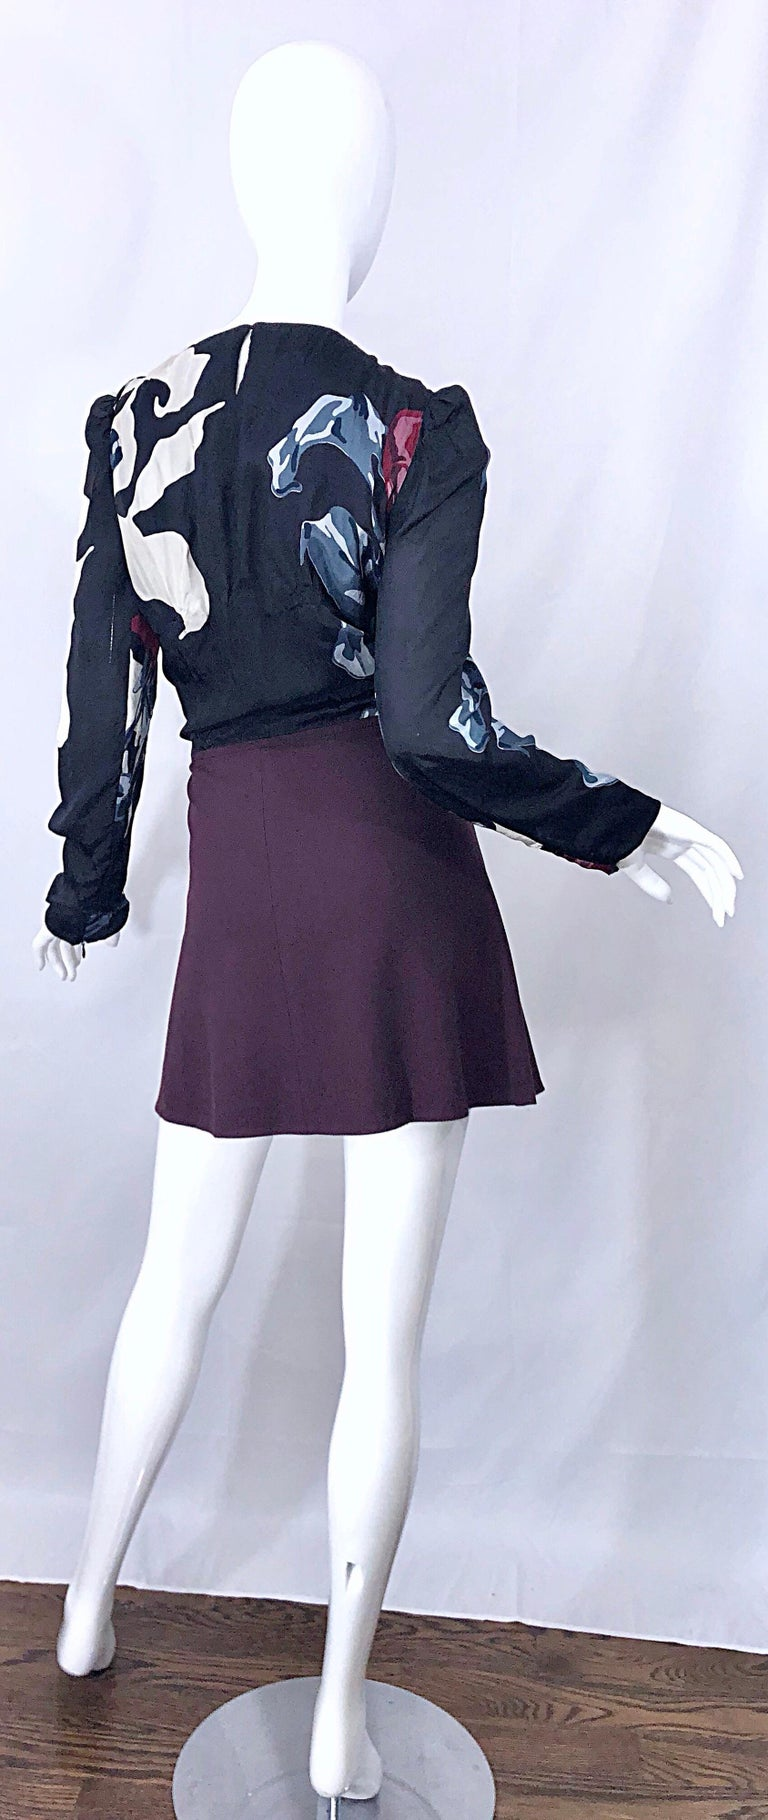 New Carven Fall 2009 Size 42 / 10 12 Burgundy + Blue + Black Abstract Mini Dress For Sale 1